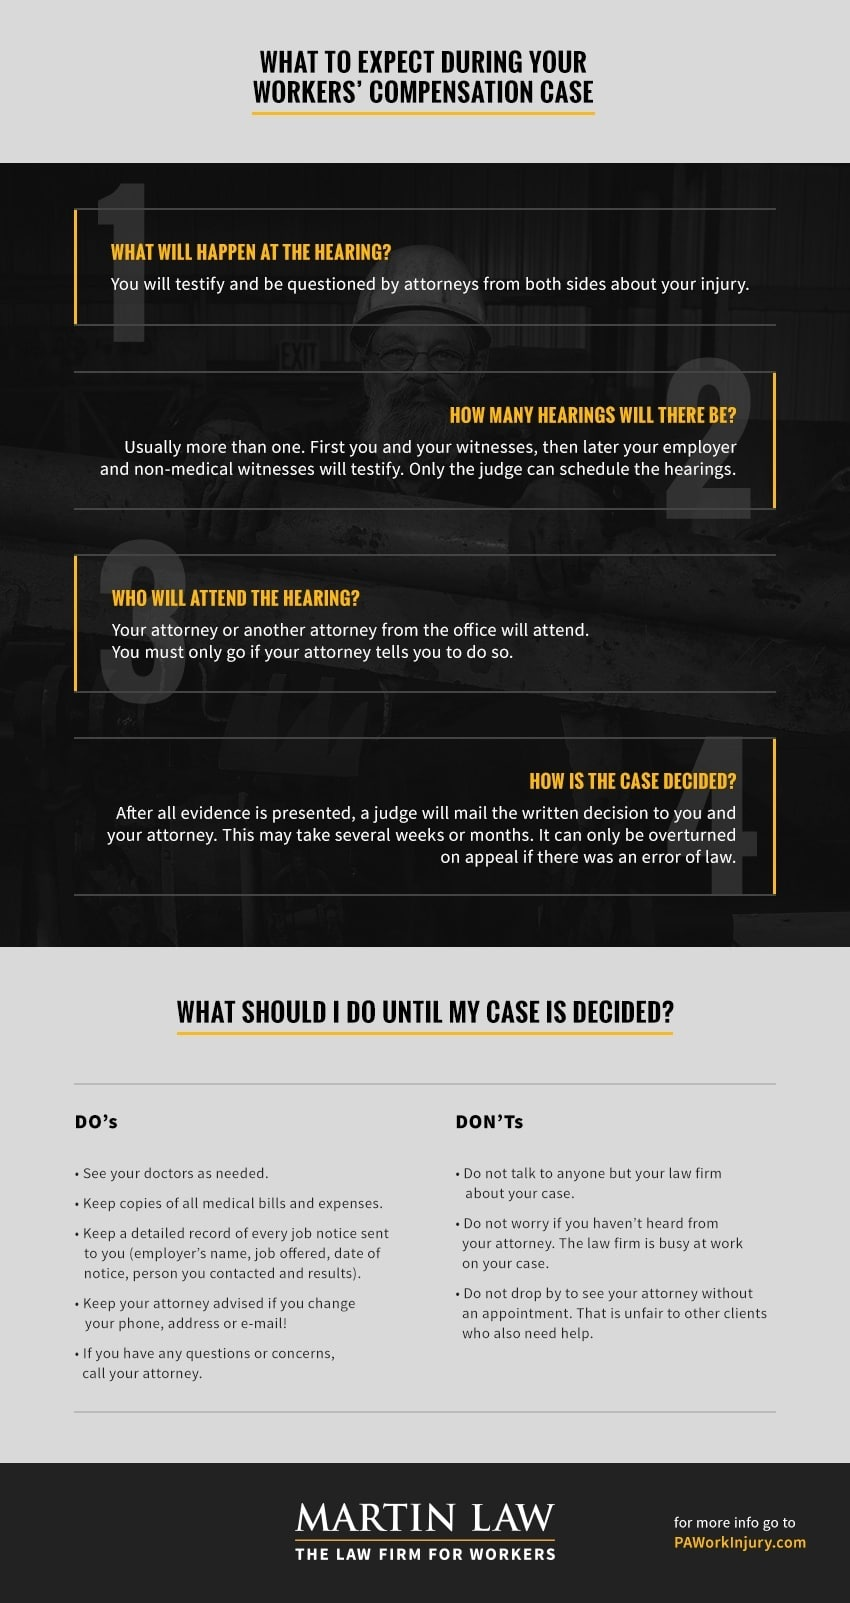 What to expect during your workers' compensation case